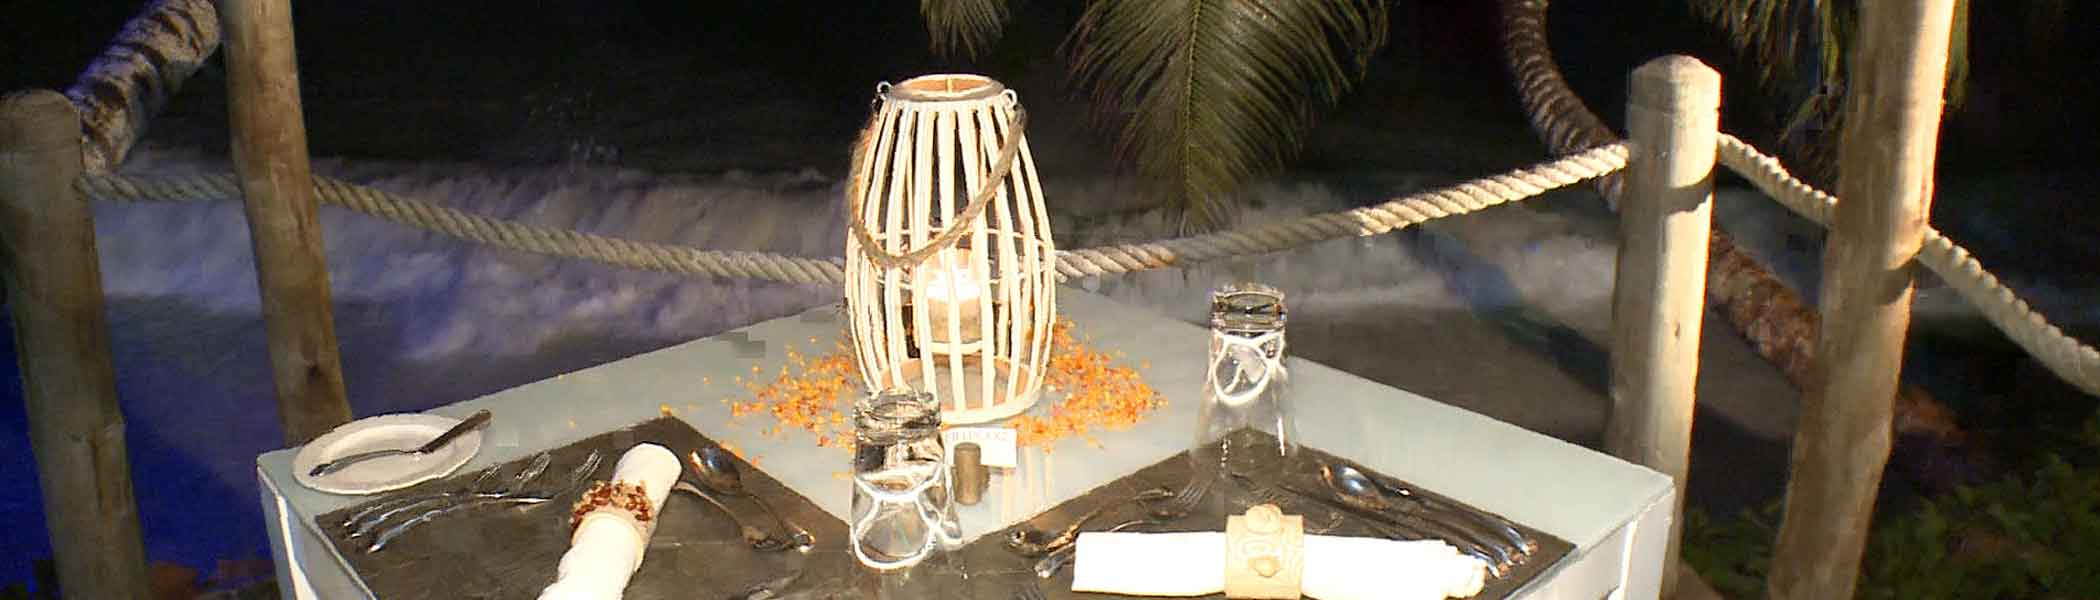 cafe-des-arts, Bars and restaurants in Seychelles Islands